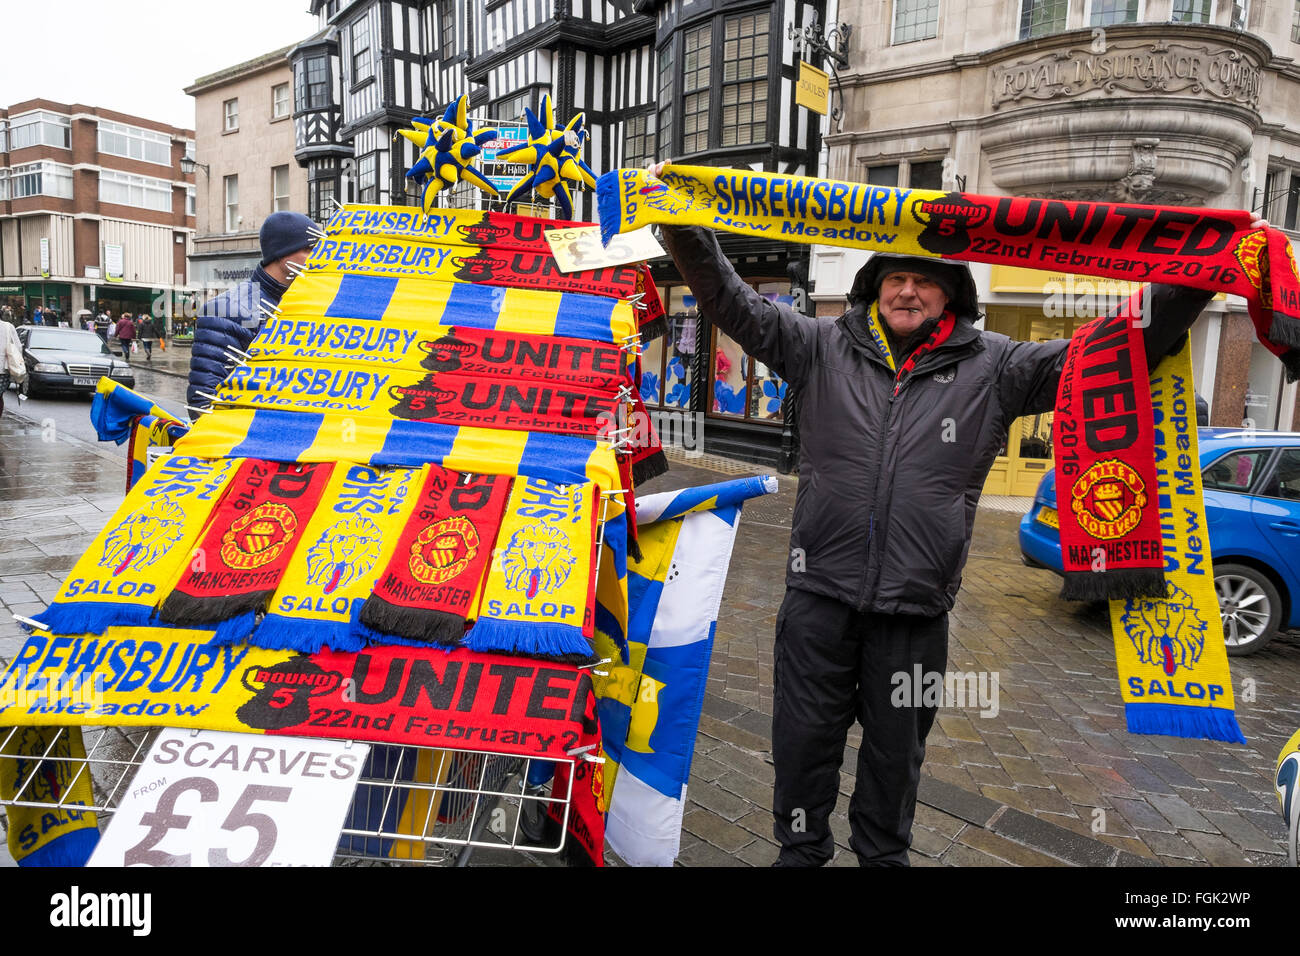 Shrewsbury, UK. Saturday 20 February 2016. Stallholder selling scarves in medieval Shrewsbury town centre, ahead - Stock Image